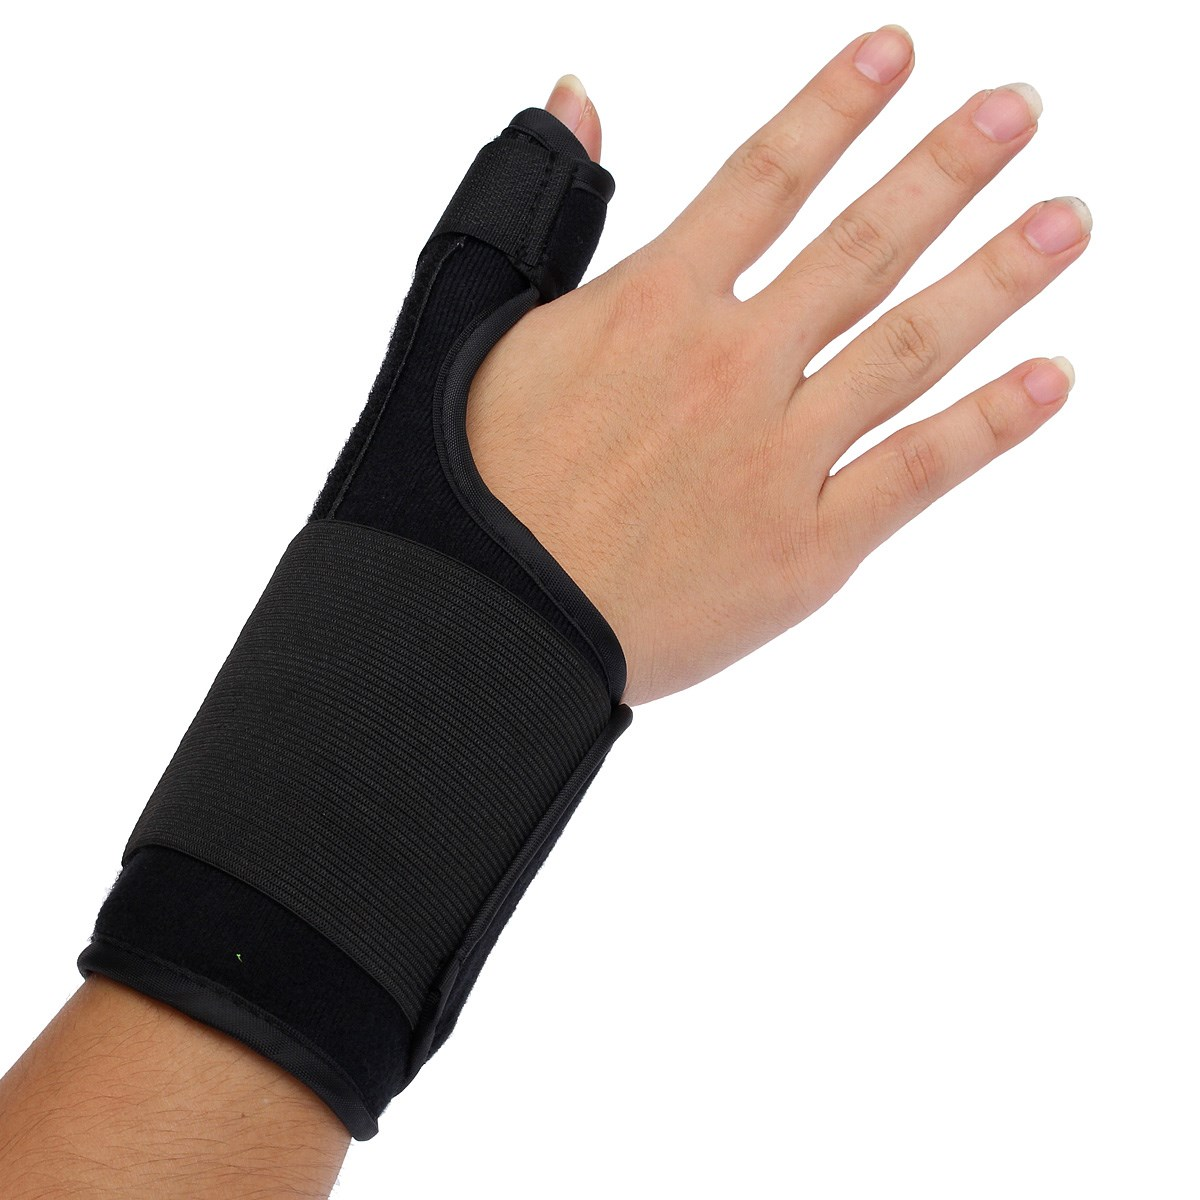 1pcs Adjustable Thumb Joint Support High Quality Wrist Thumbs Hands Support Brace Stabiliser for Sprain Strain Arthritis